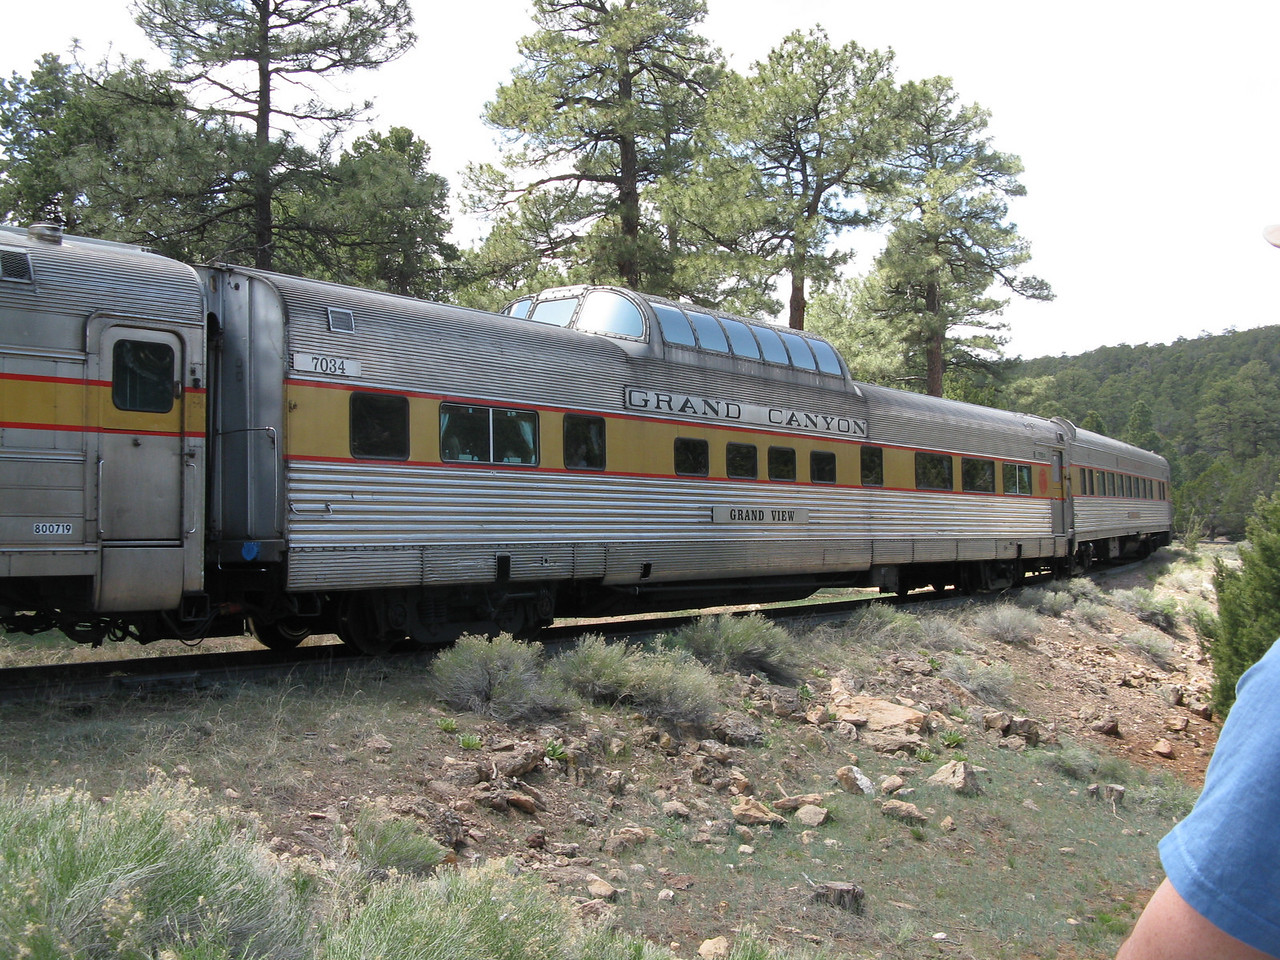 There were two dome cars.  The train does not run near the rim of the Grand Canyon.  Williams is about 50 miles south of Grand Canyon Village.